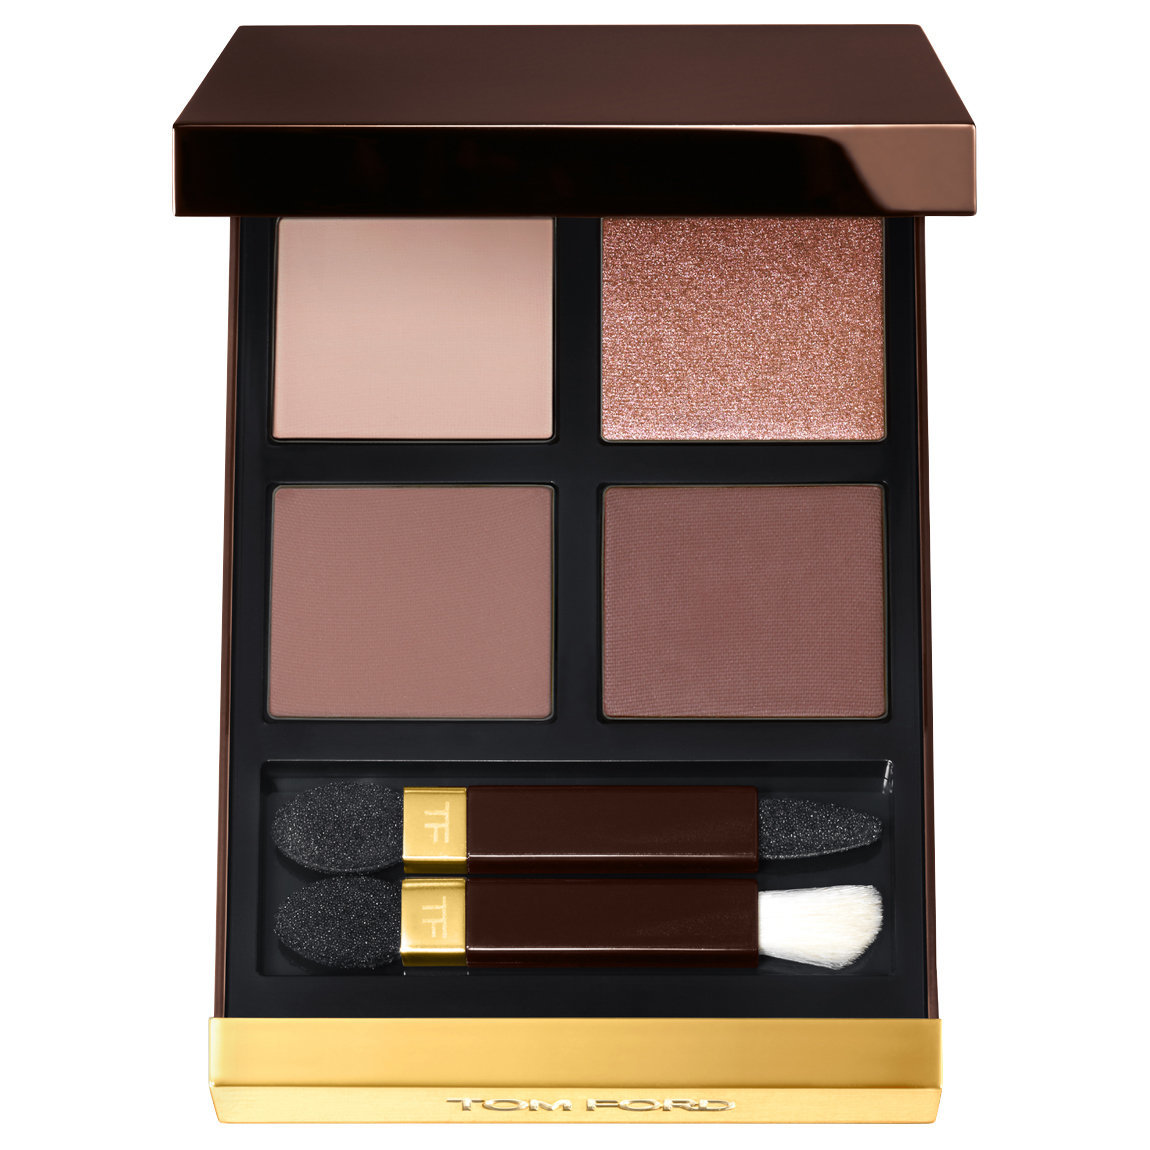 TOM FORD Eye Color Quad Sous Le Sable product swatch.